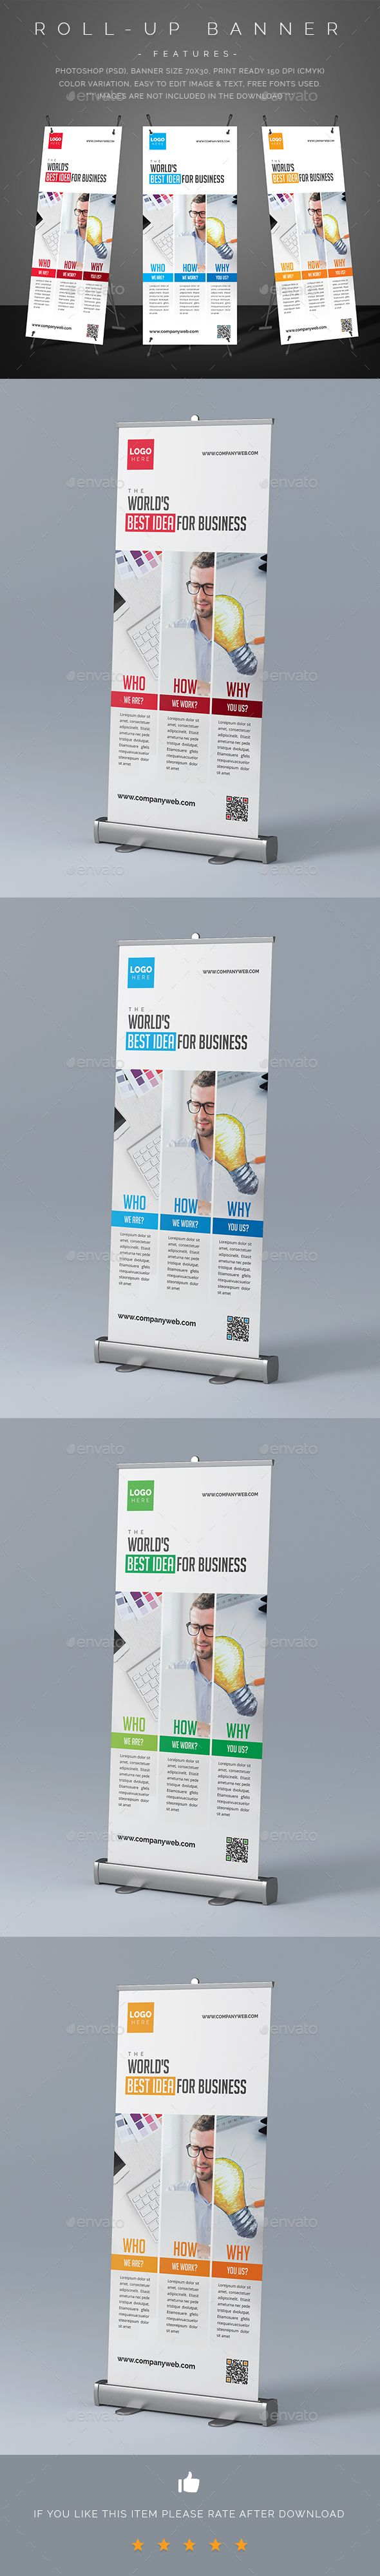 24 best Design - Roll Ups images on Pinterest | Rollup banner ...